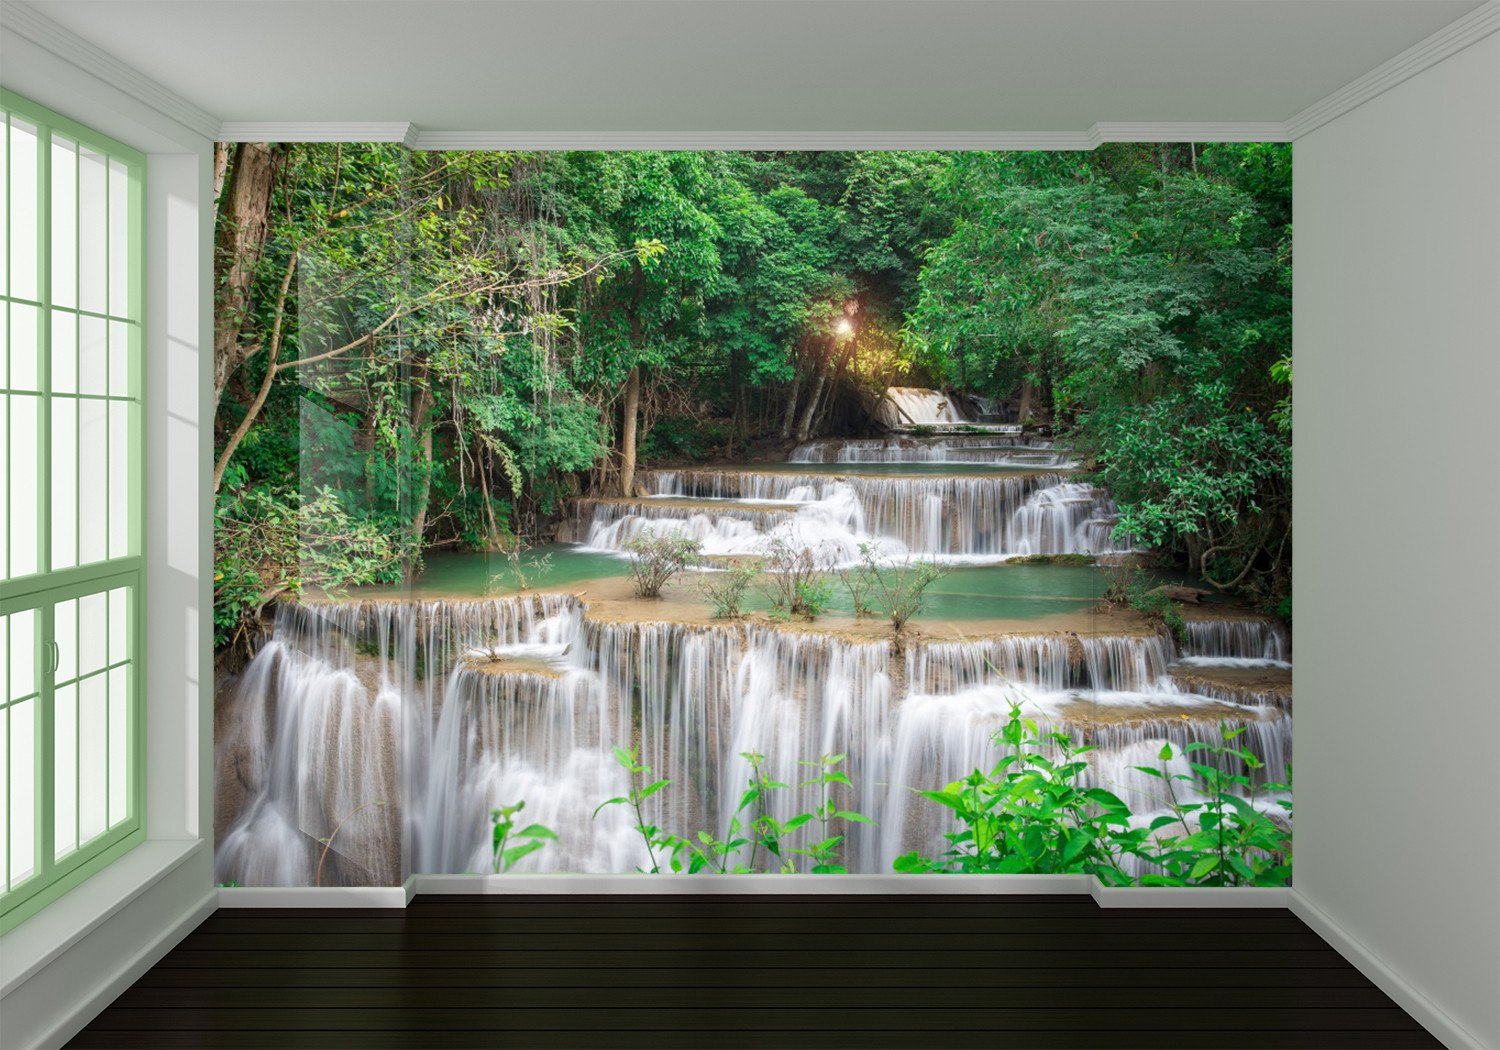 Green Flowing Stream 74 Wallpaper AJ Wallpaper